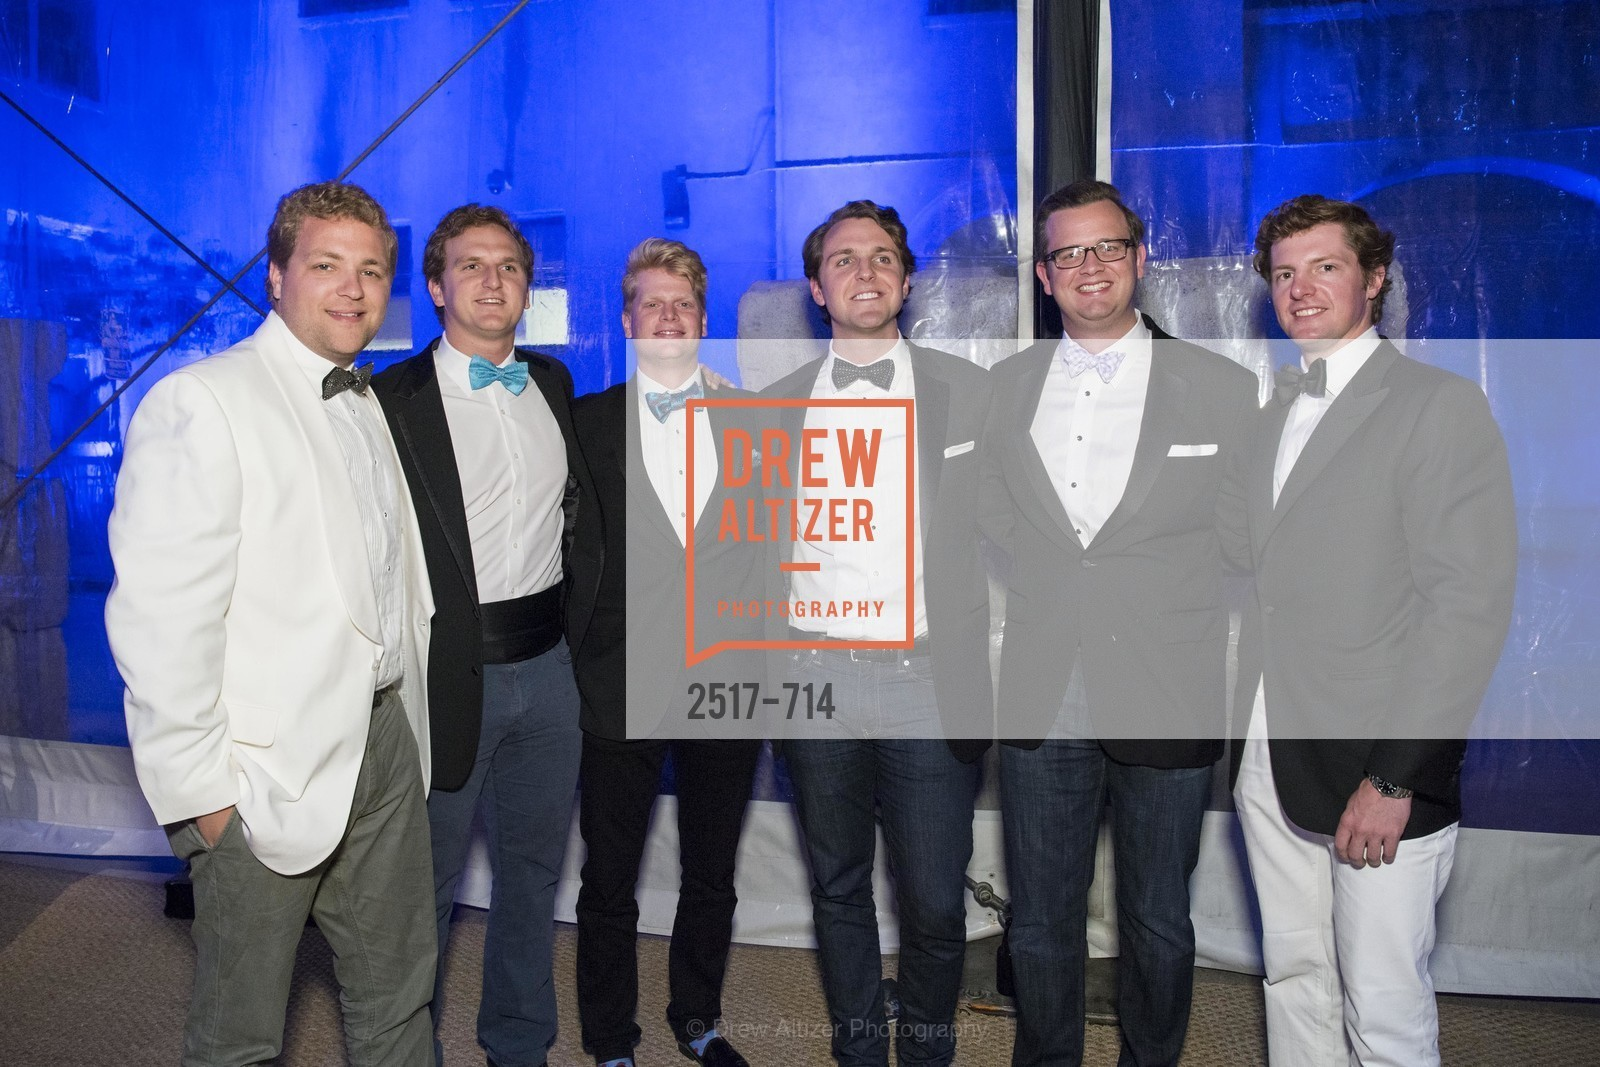 Wes French, Rob Boyle, Zach Dewitt, Christian Cimmino, Jack Clements, Stephen Sherrill, SFJAZZ Gala 2015 Honors Joni Mitchell with Lifetime Achievement Award, US, May 9th, 2015,Drew Altizer, Drew Altizer Photography, full-service agency, private events, San Francisco photographer, photographer california